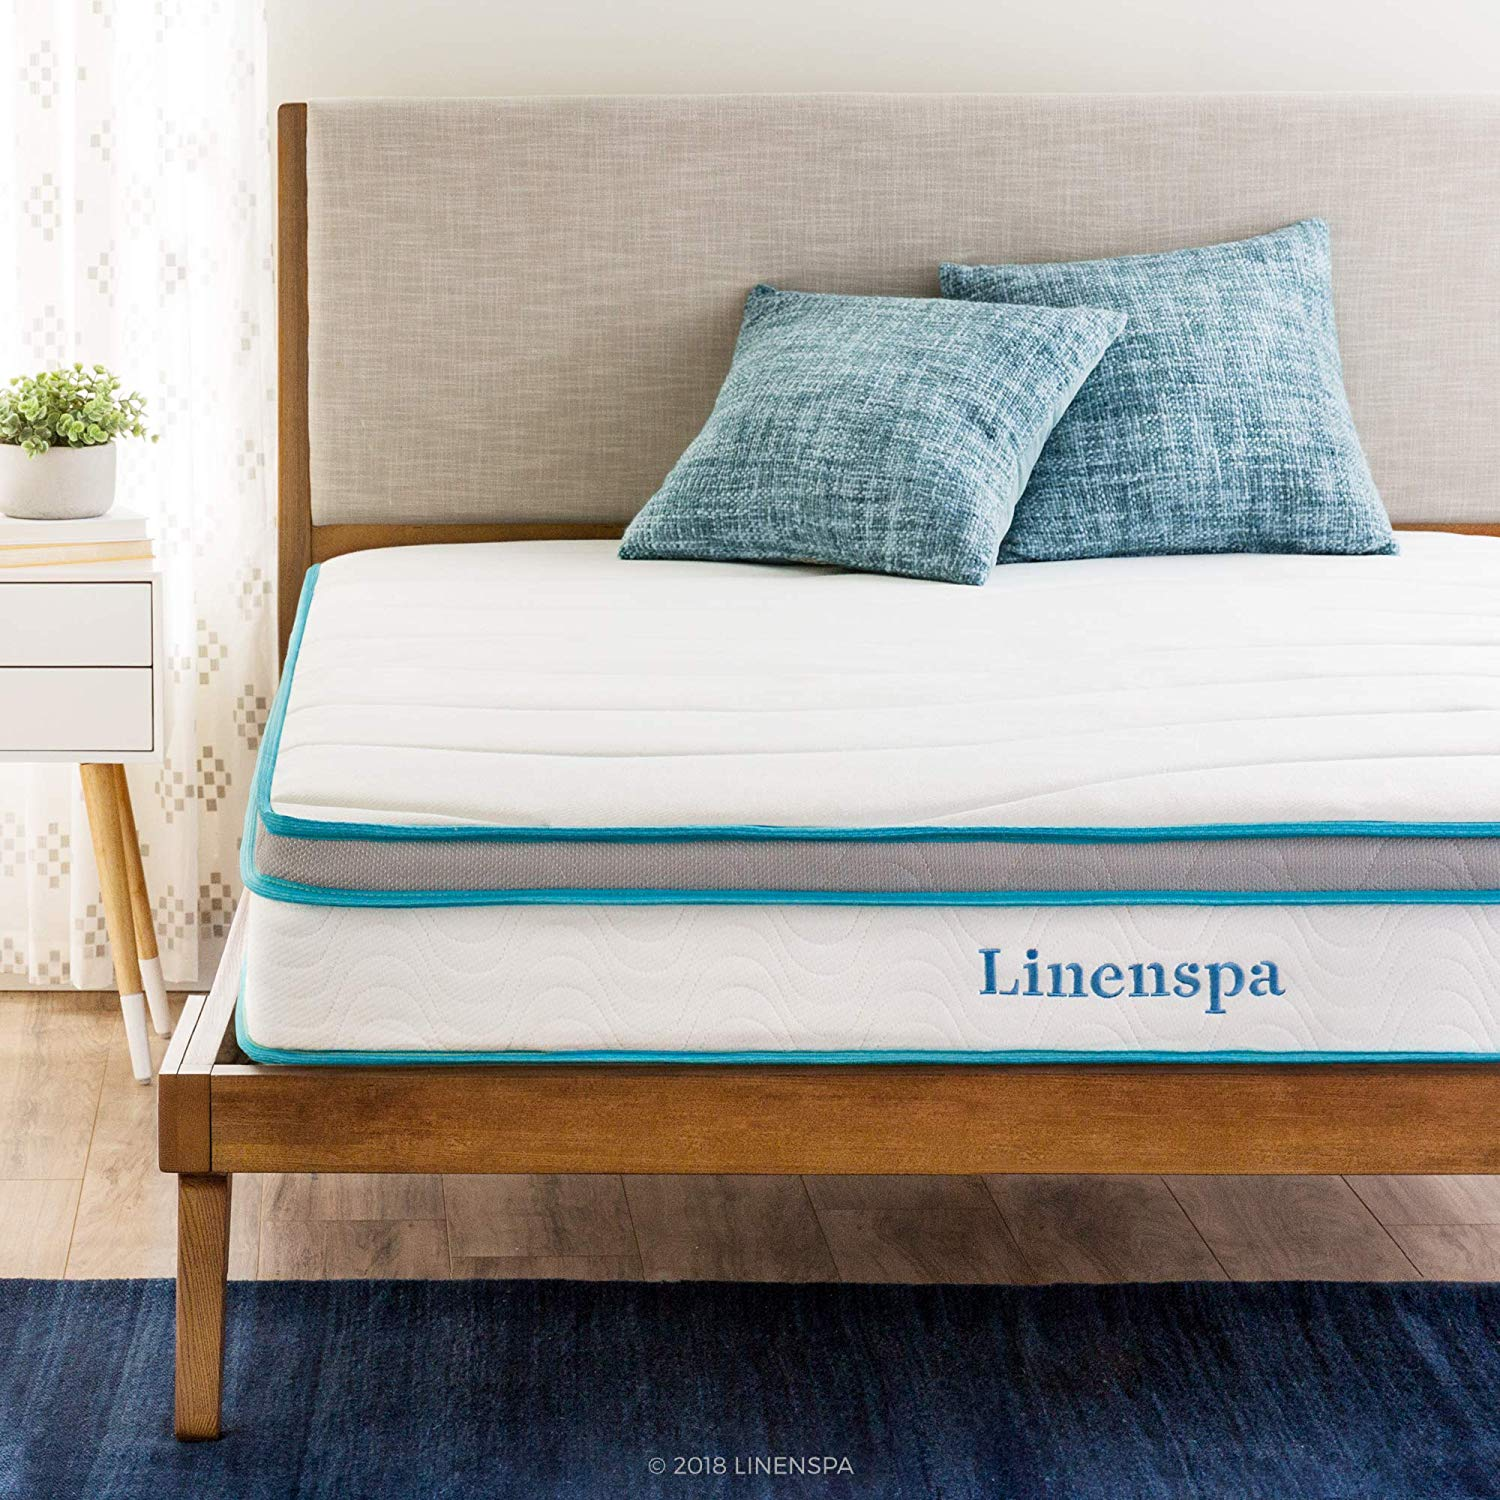 Linenspa 10´´ Inch Innerspring mattress.